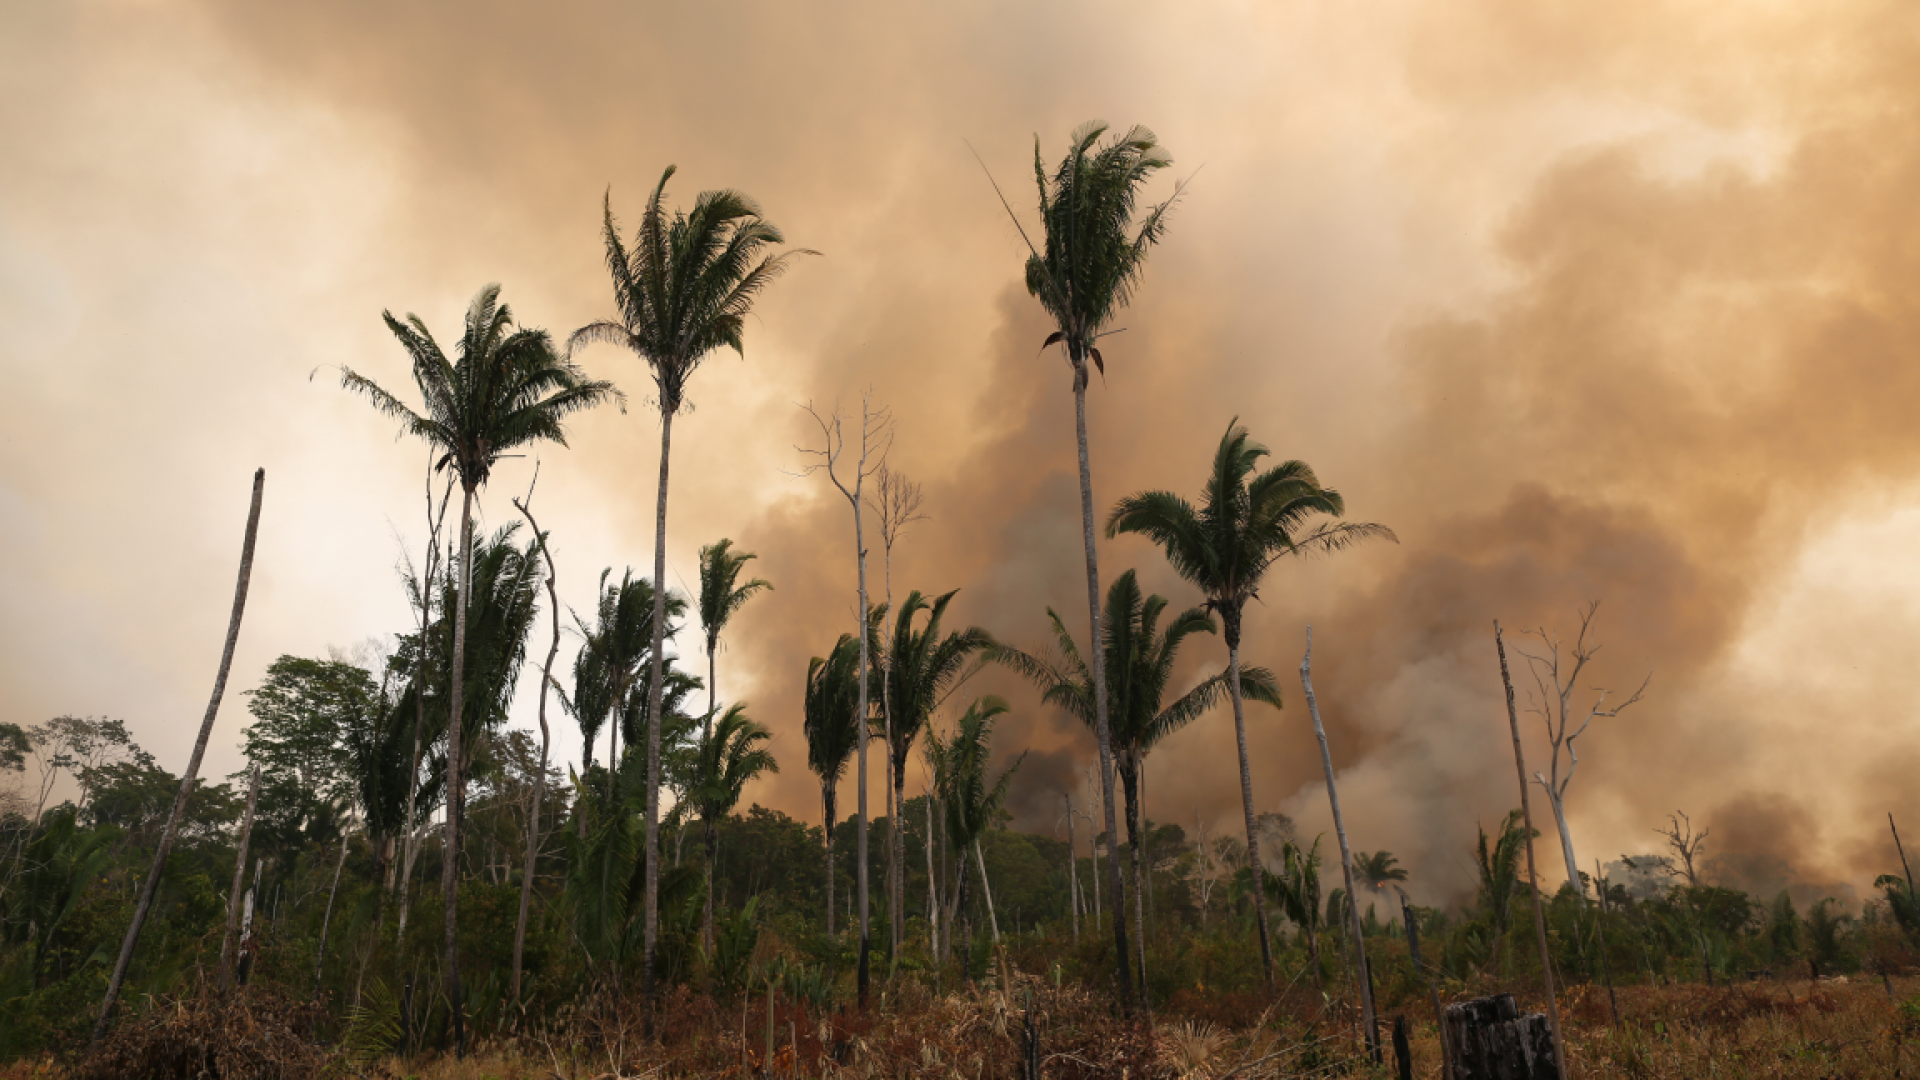 Image shows burning forest in Brazil